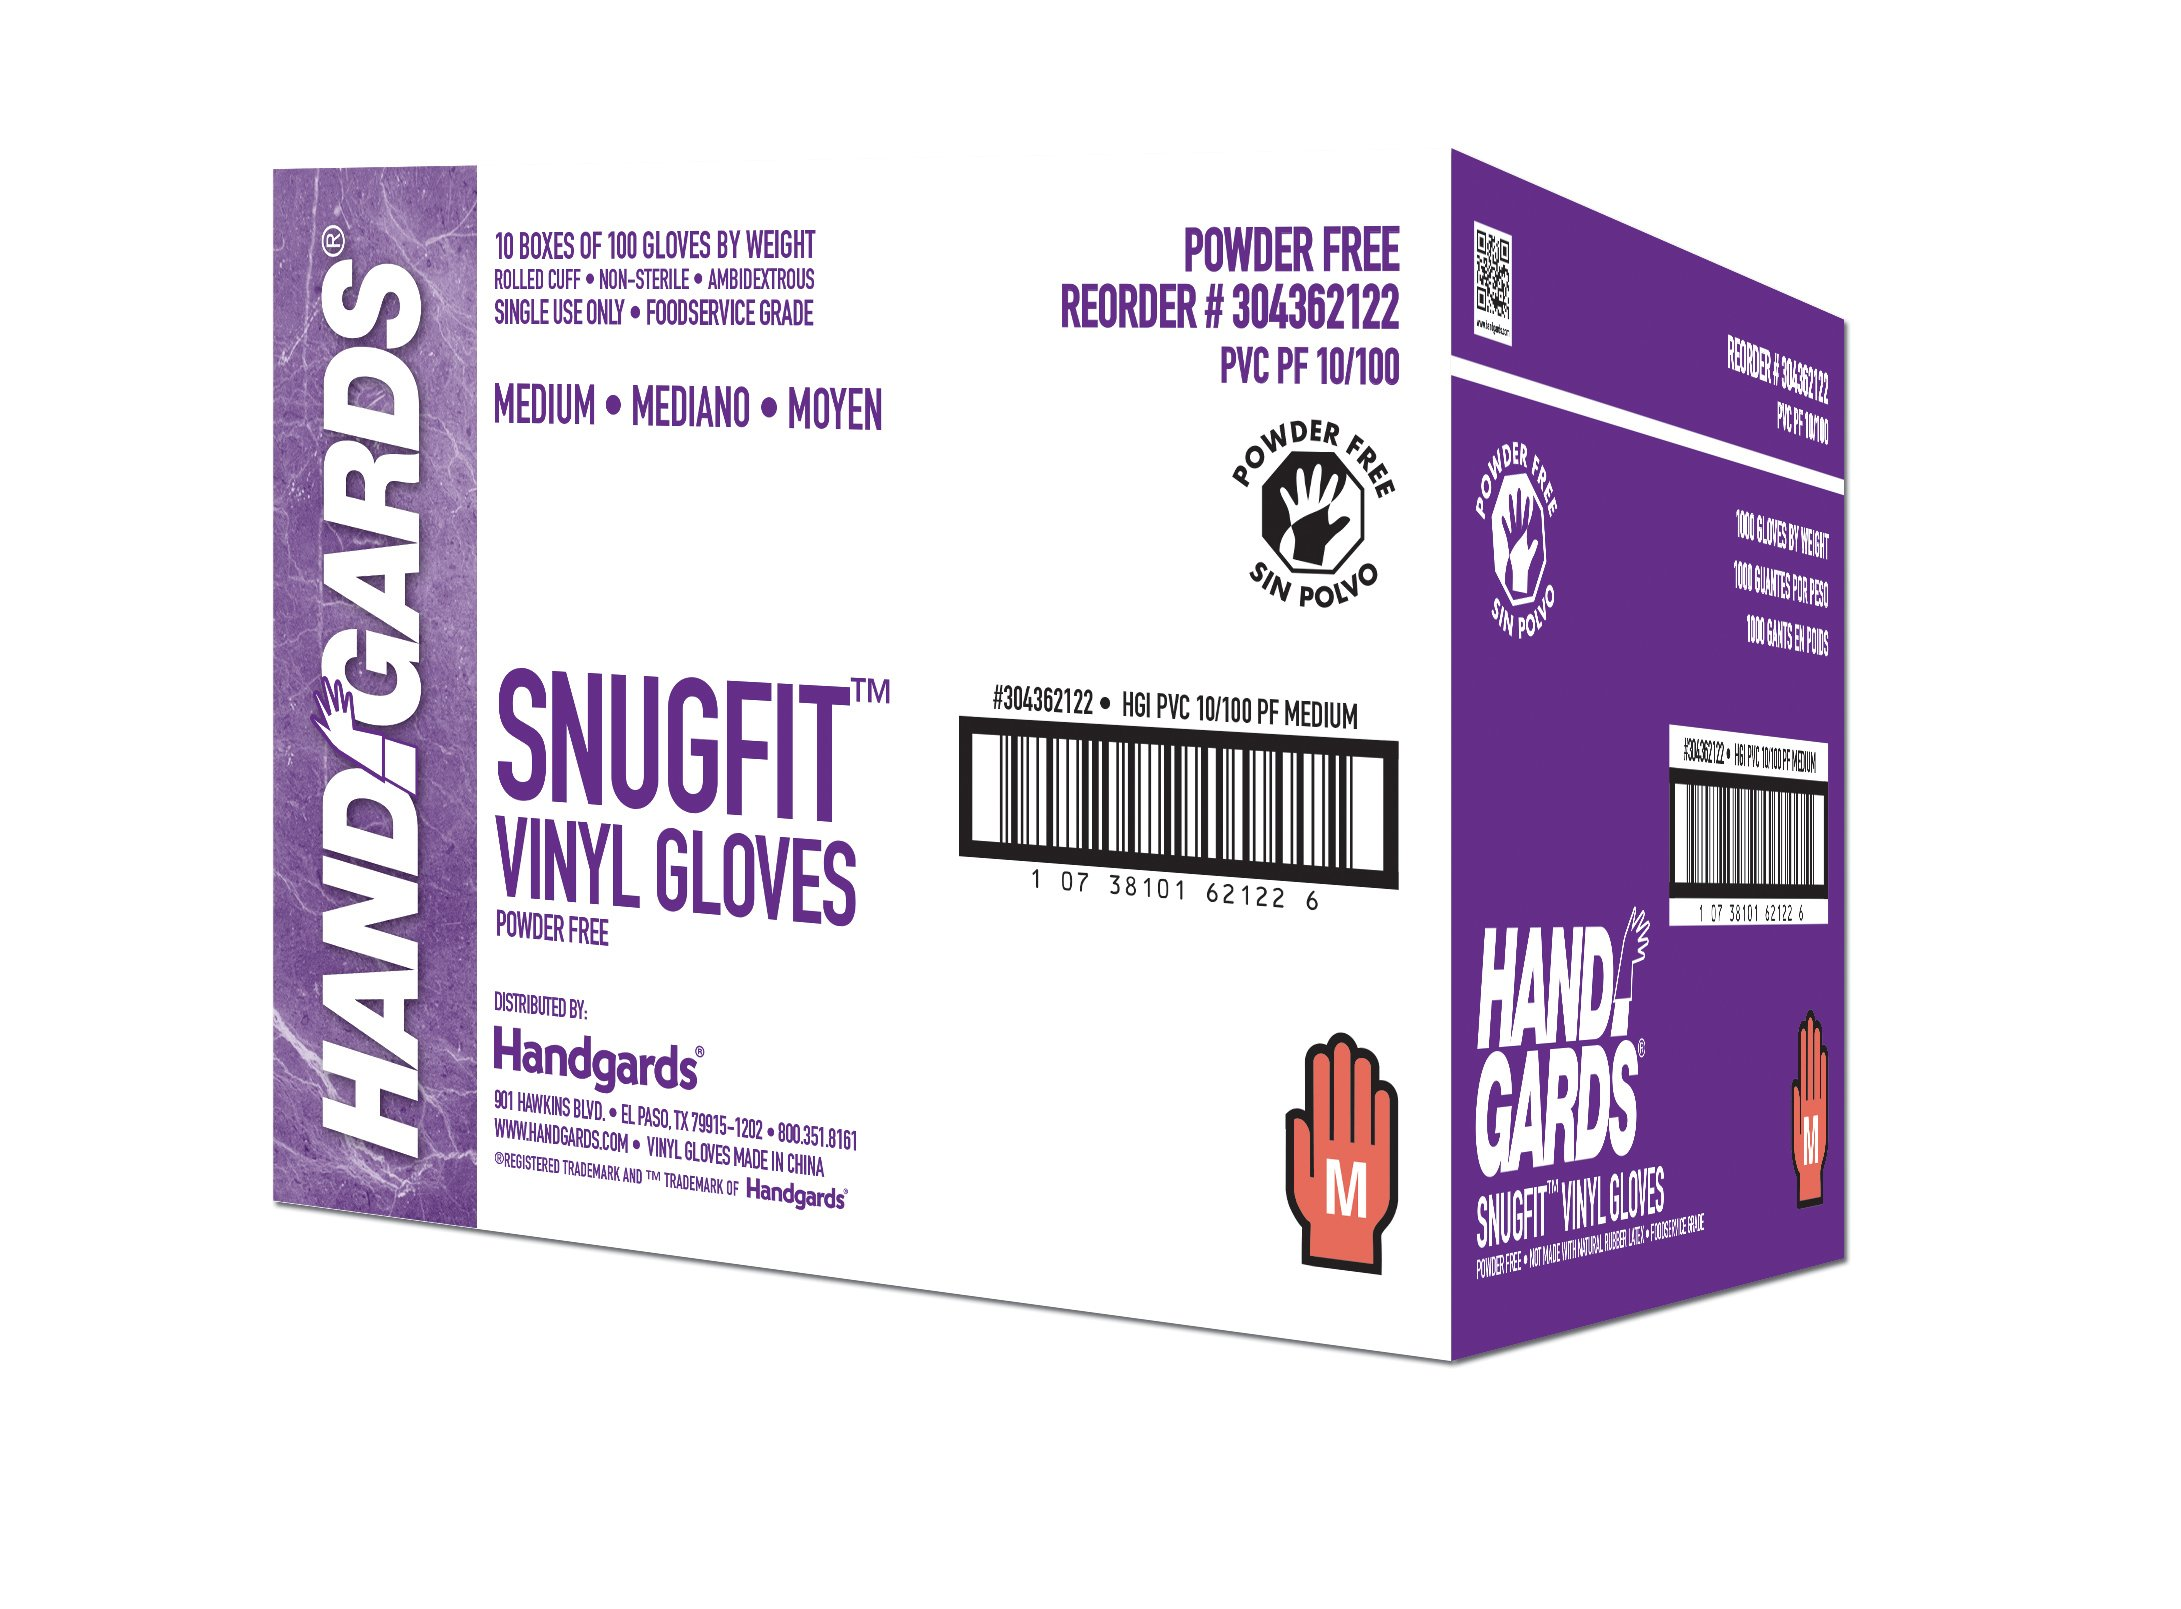 Handgards Glove Vinyl Powder Free Medium 100 ea. (10 count)